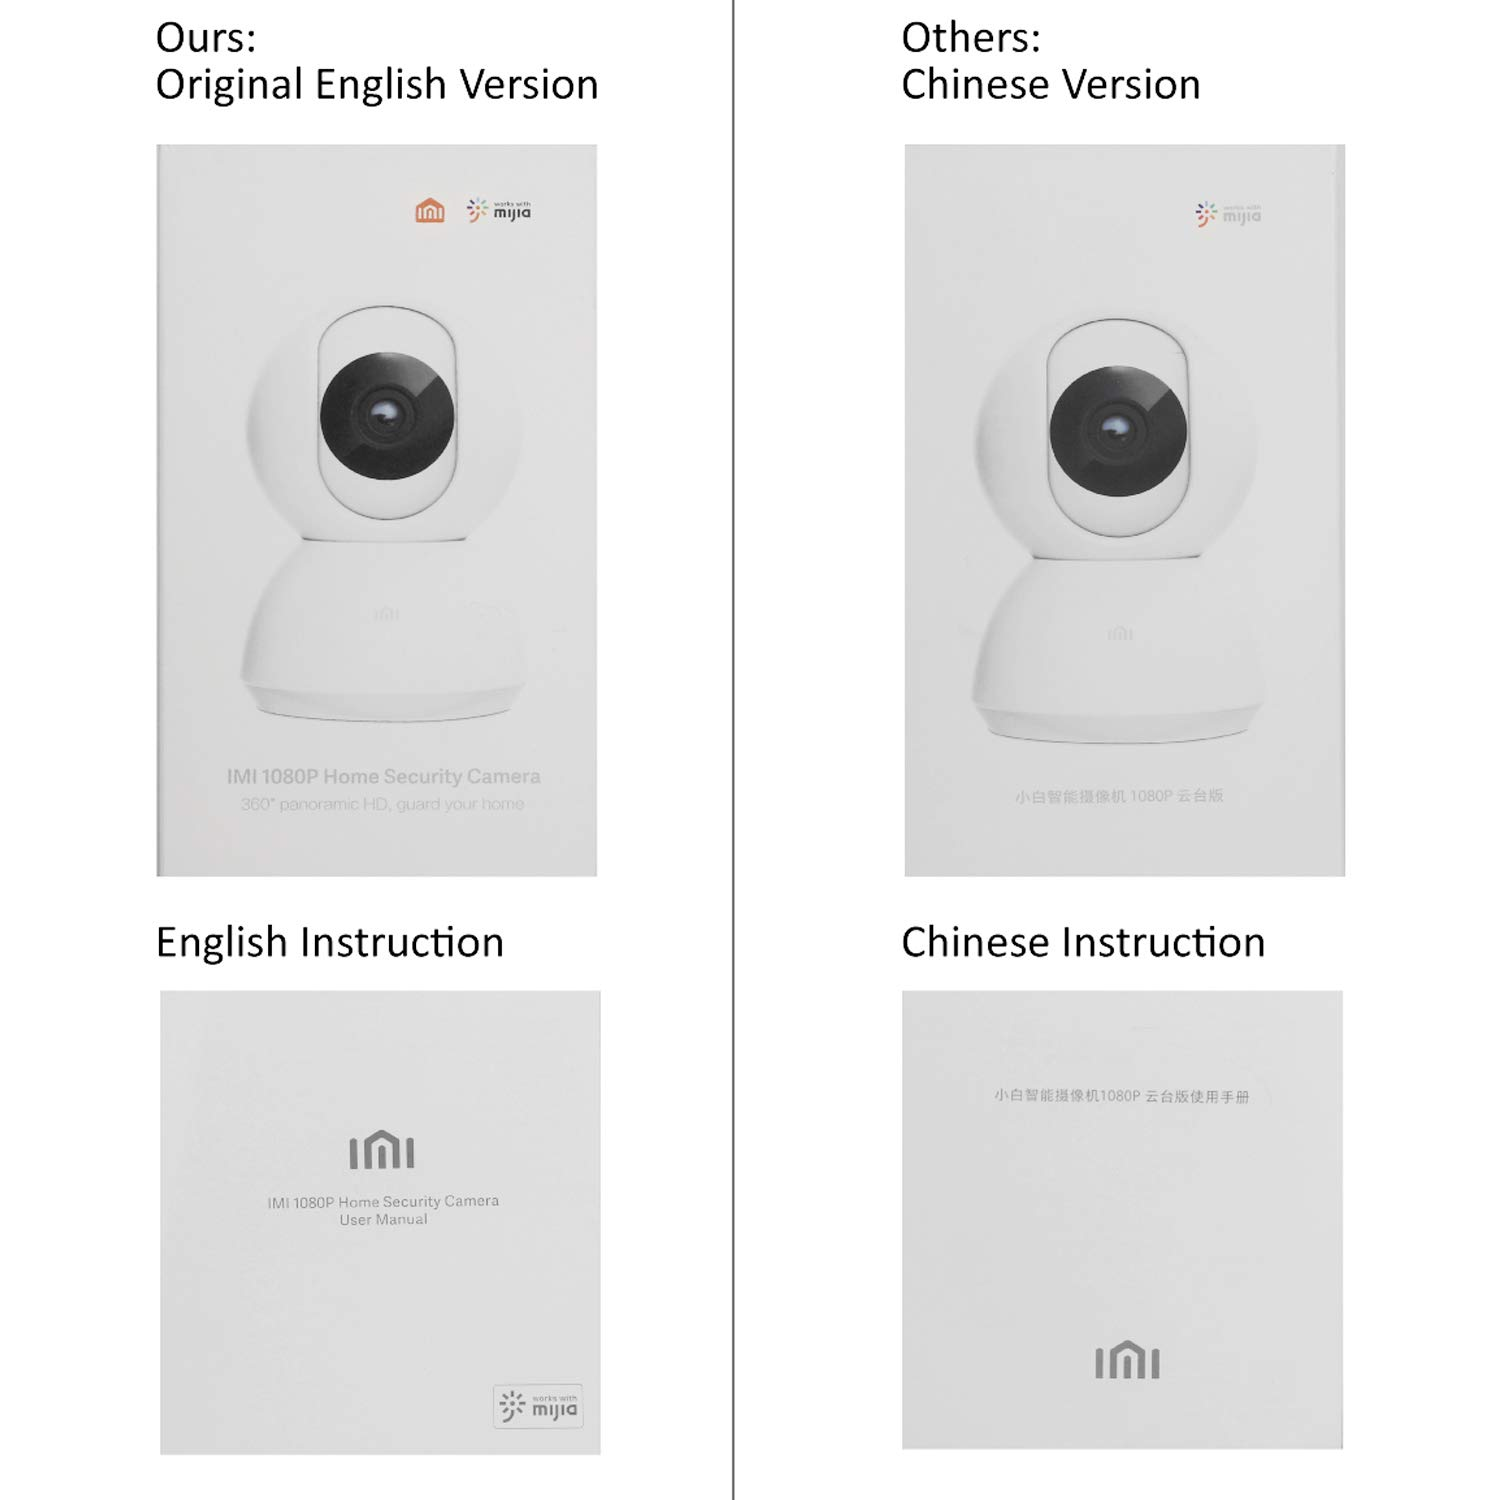 Ltd IPC004-20-US-32 IMI Dome 1080p HD WiFi IP Camera Indoor Wireless Pan Tilt Security Home Surveillance with Night Vision Pre-Installed 32G Card Motion Detection Alert 2-Way Audio for Baby//Pet//Elder Shenzhen Dianchen Industrial Co